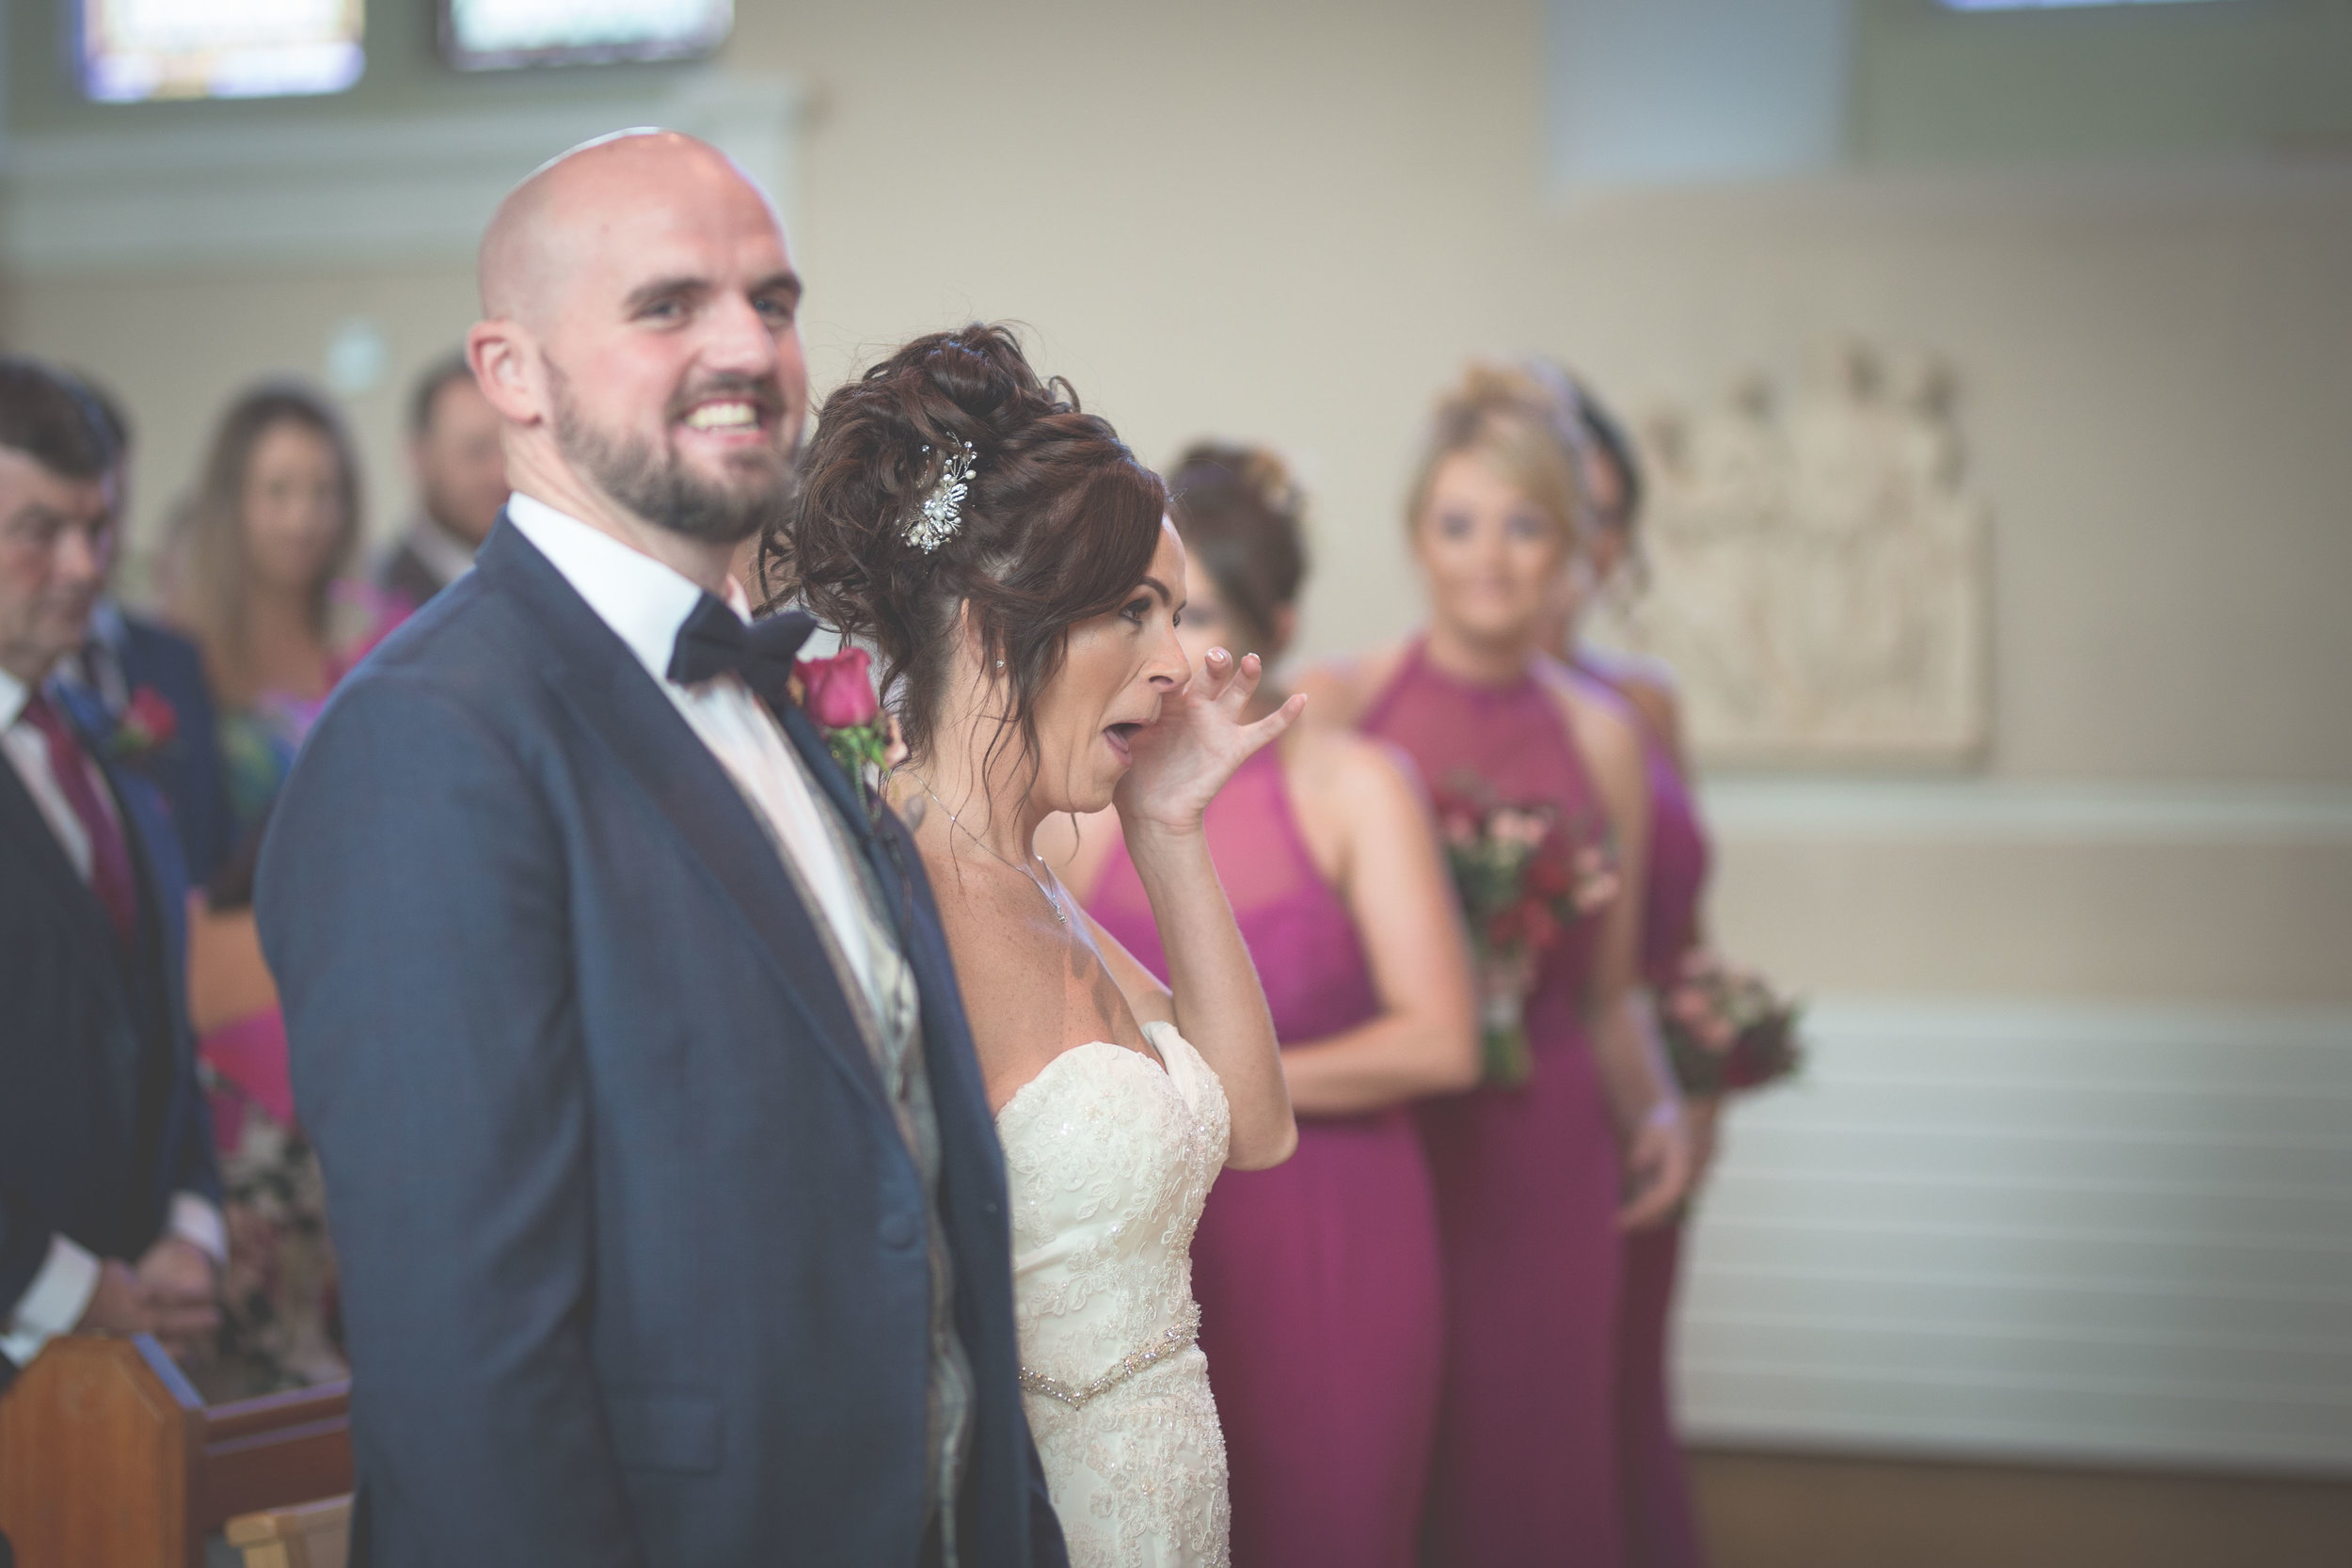 Aisling & Andy - Ceremony-22.jpg